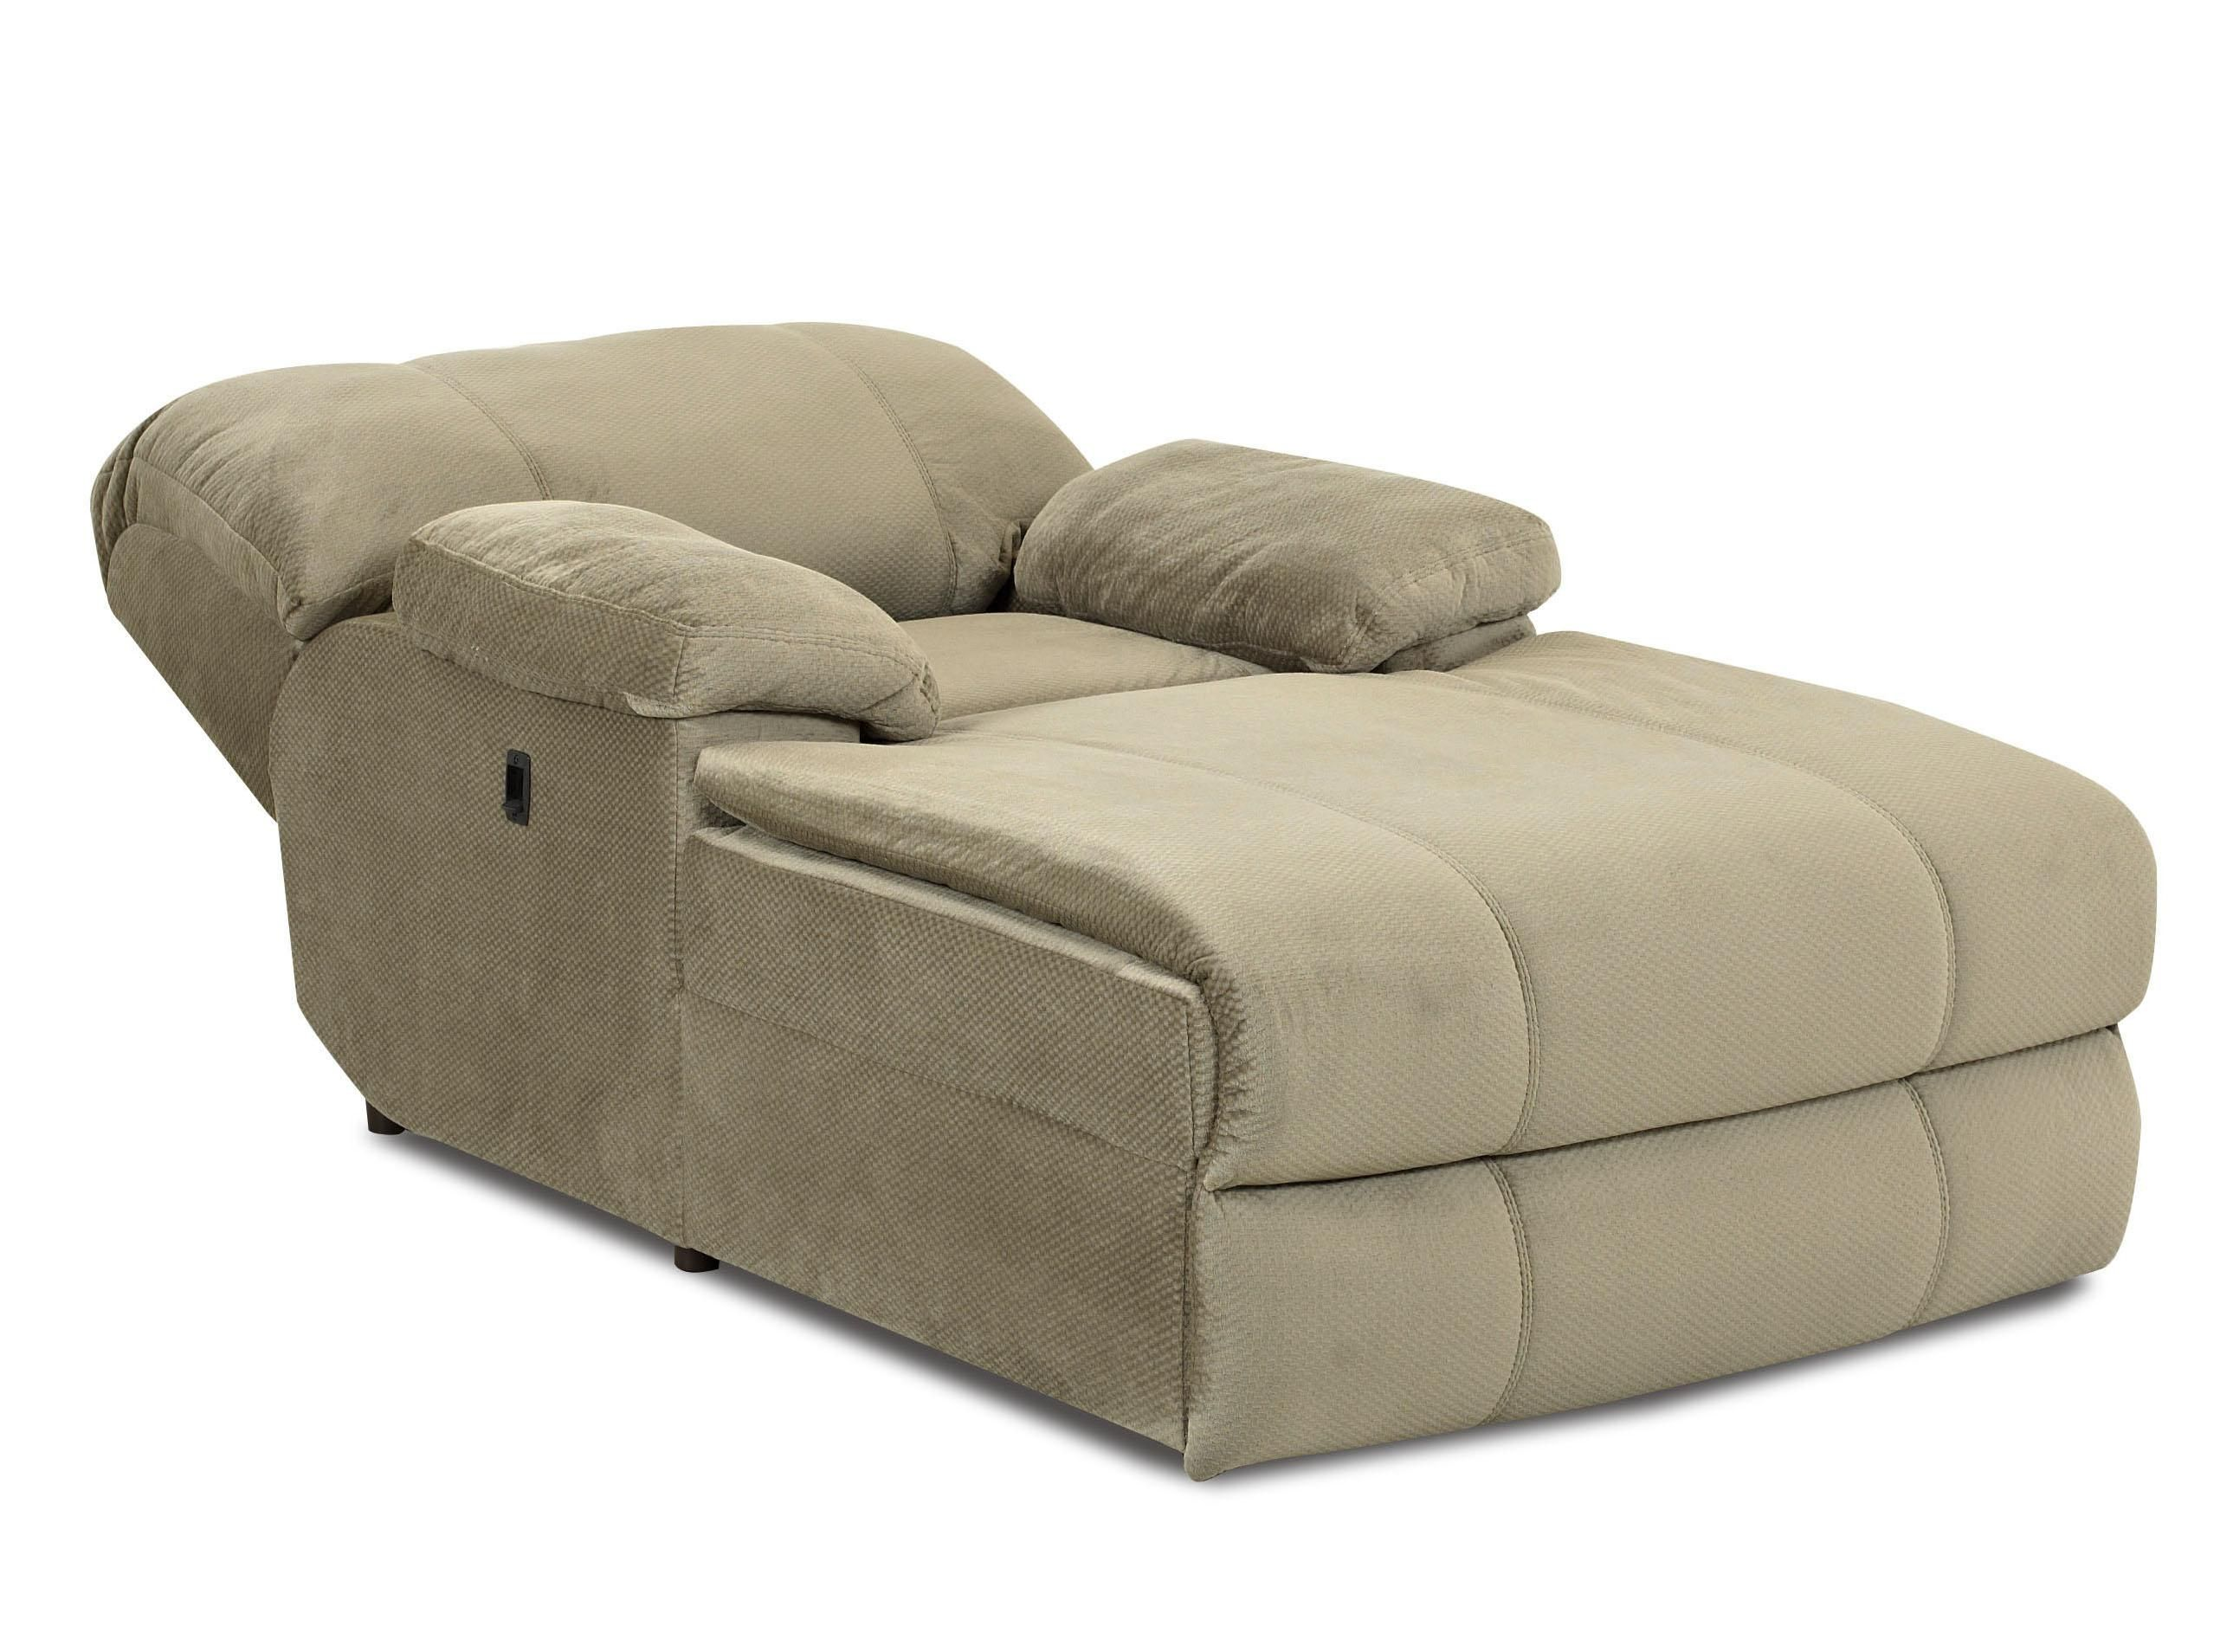 Indoor oversized chaise lounge kensington reclining for Chaise longe sofa